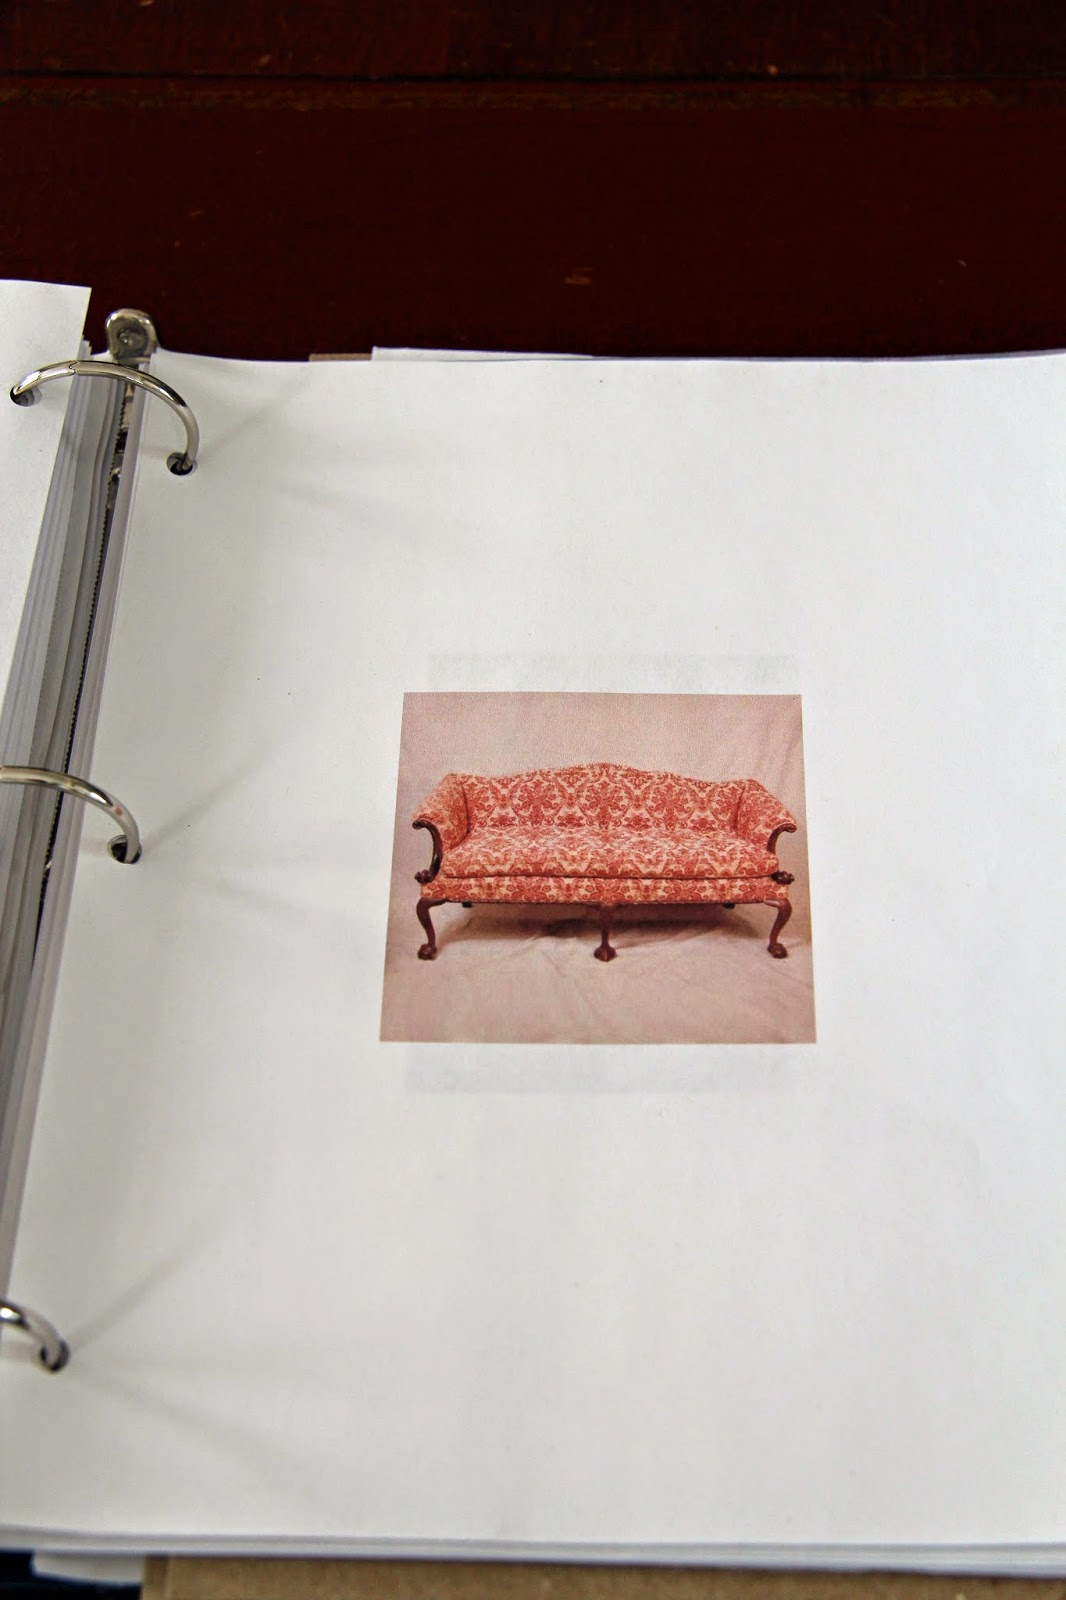 In the fields renovation and the three ring binder i also feel as if placing an inspiration photo in my three ring binder like this damask covered chippendale sofa will compel me to be brave and wiggle malvernweather Image collections